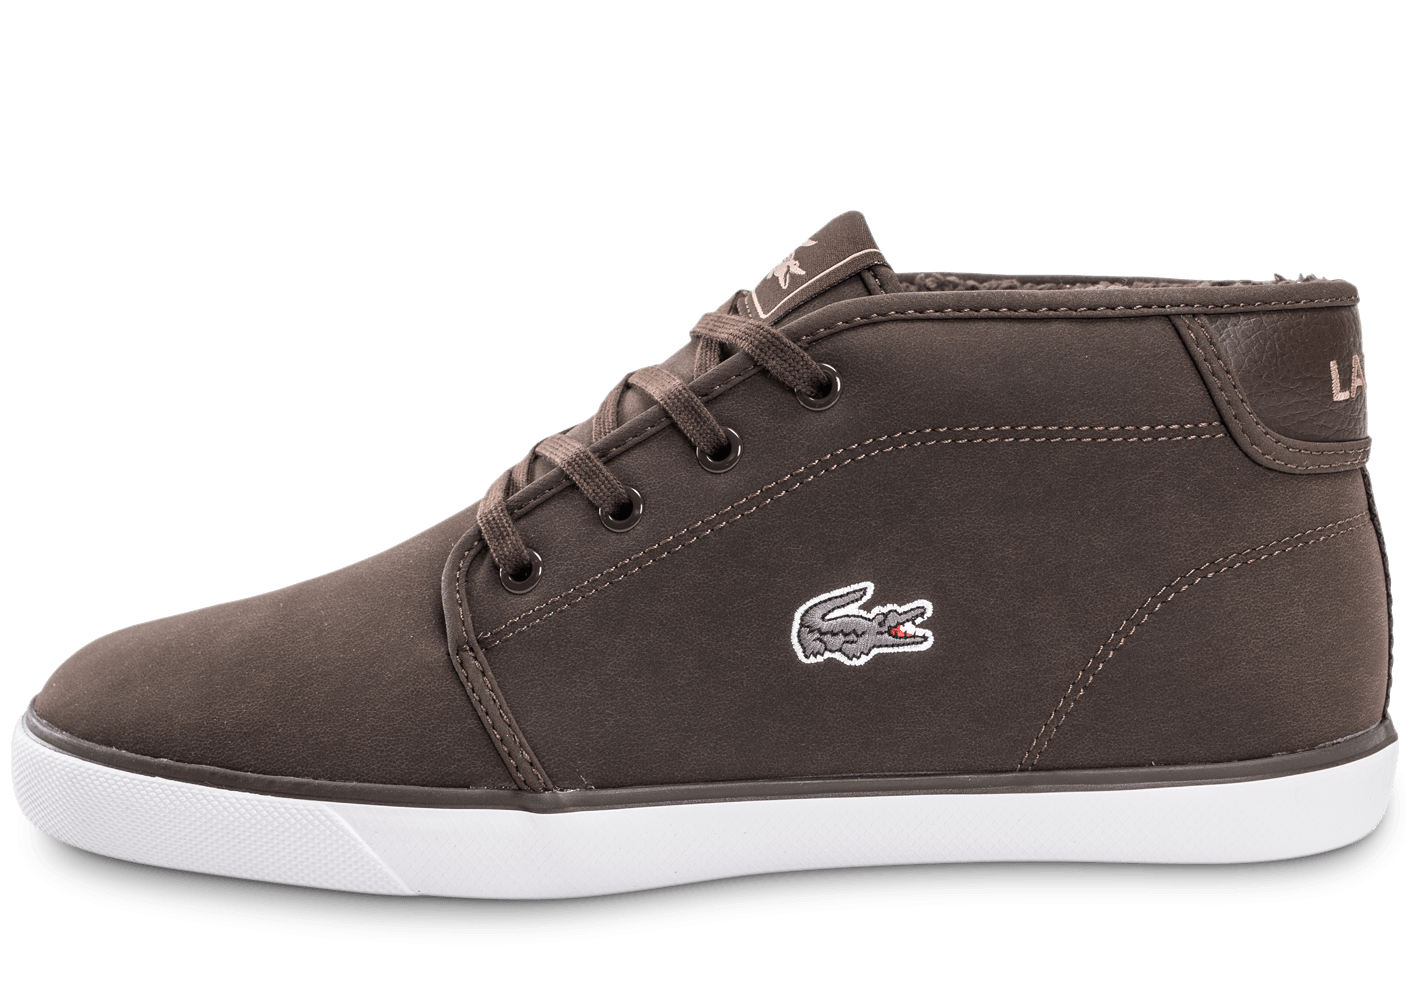 b91af25ee942 Chausport Ampthill Lacoste Homme Marron Chaussures Baskets CderxoQWEB